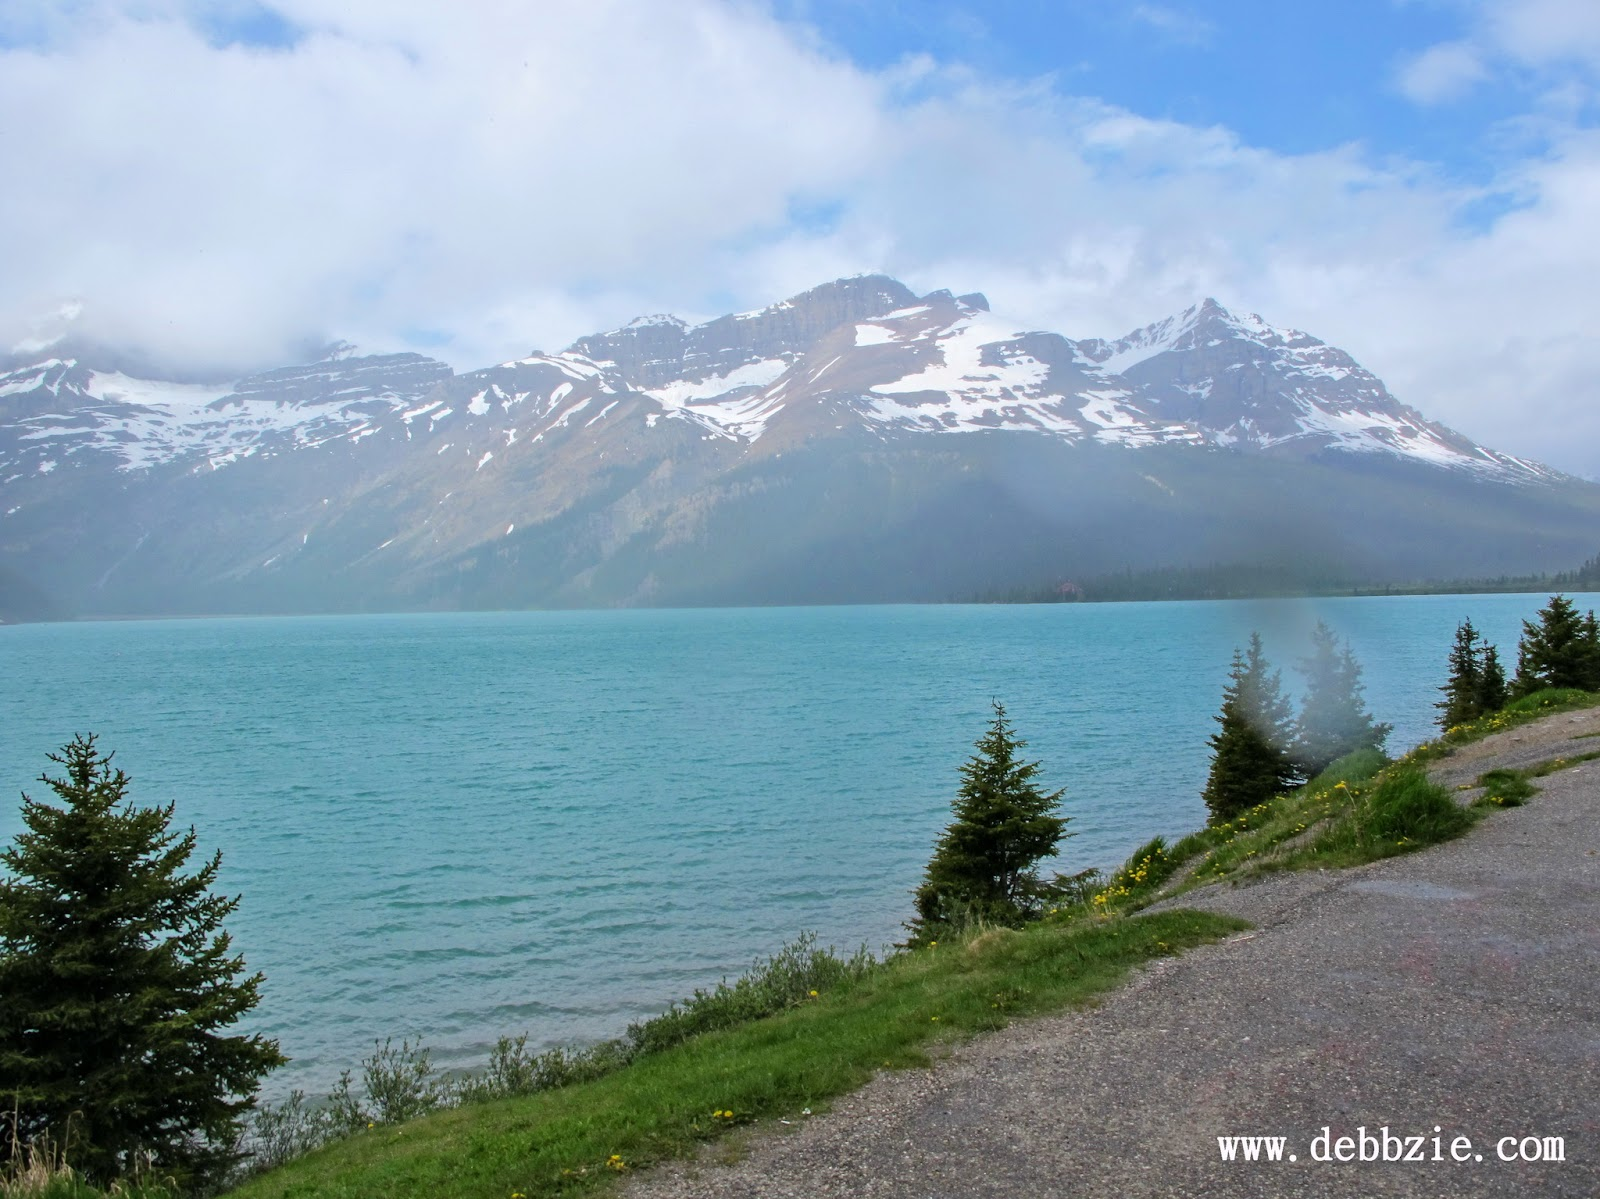 Canada: The Rockies and Athabasca Glacier